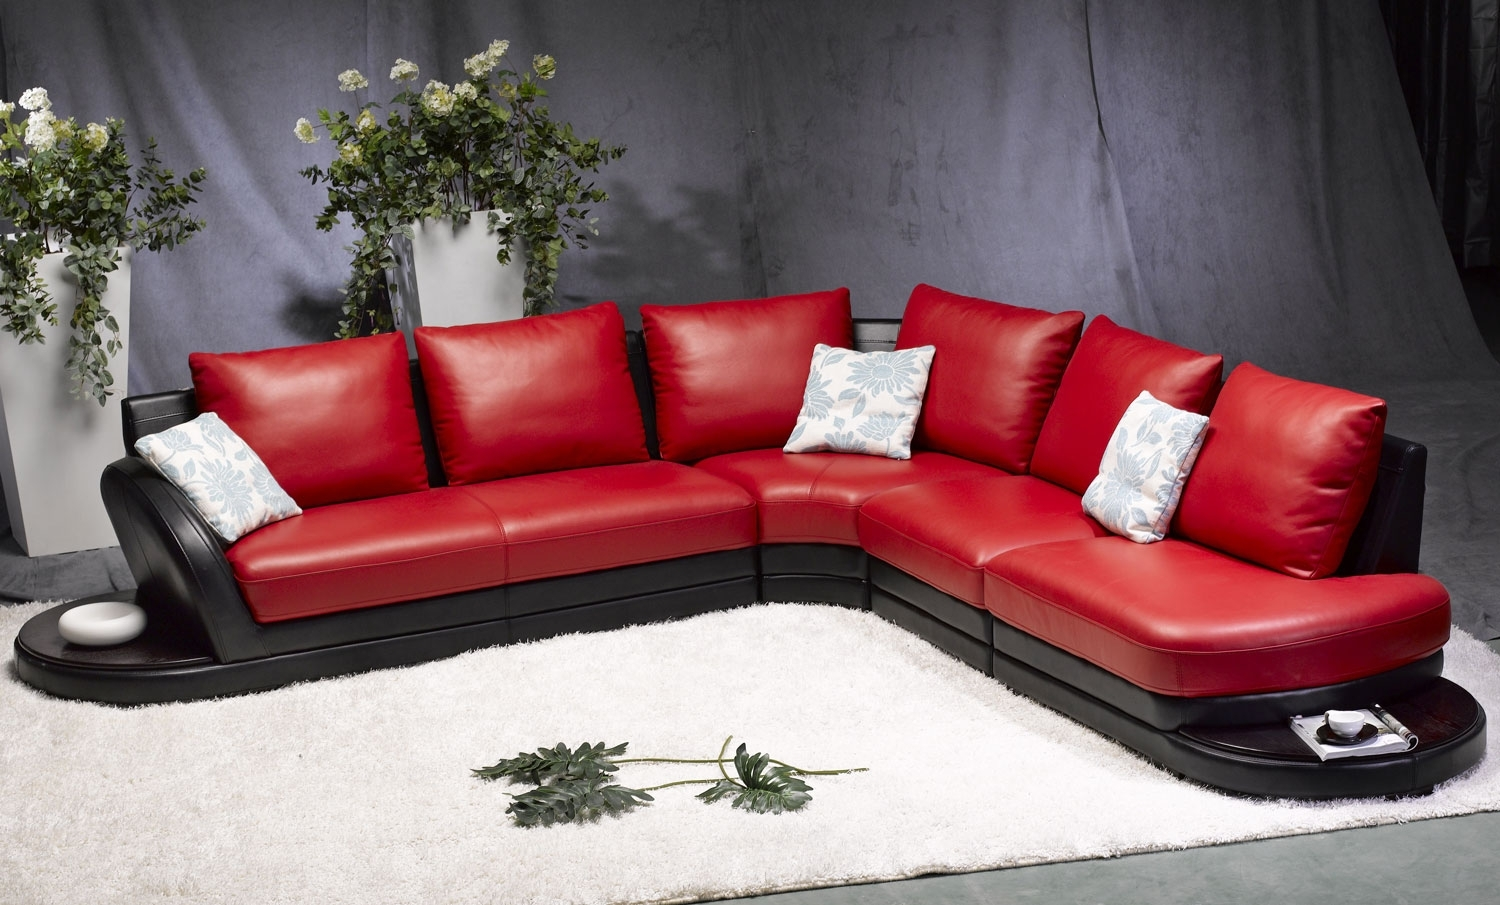 Sofas: Red Sectional Sofa | Reclining Sectional Sofas For Small For Small Red Leather Sectional Sofas (Image 8 of 10)